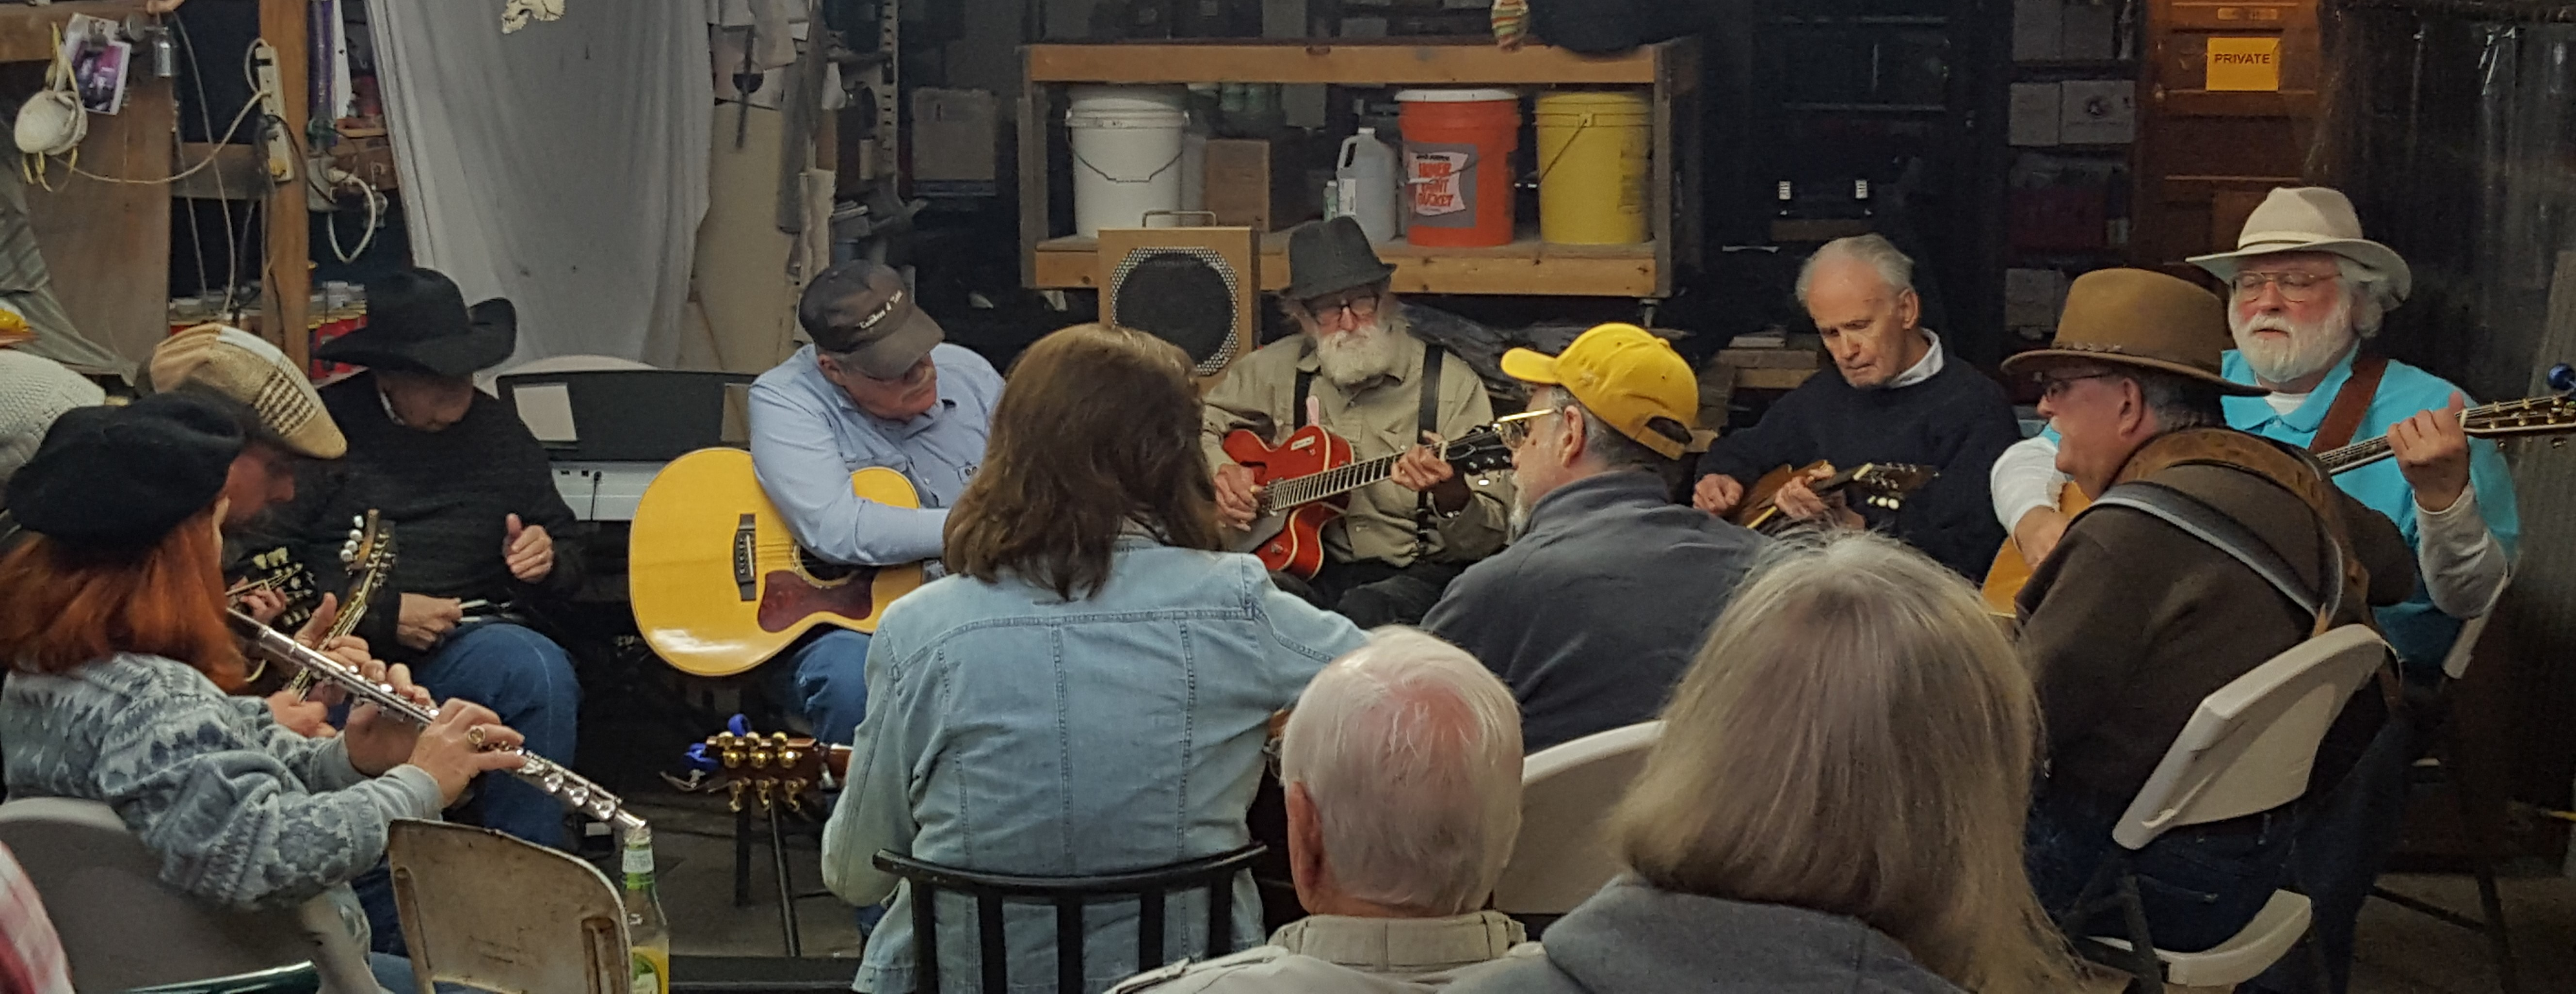 The Chicken Pickers gather in a circle of local musicians